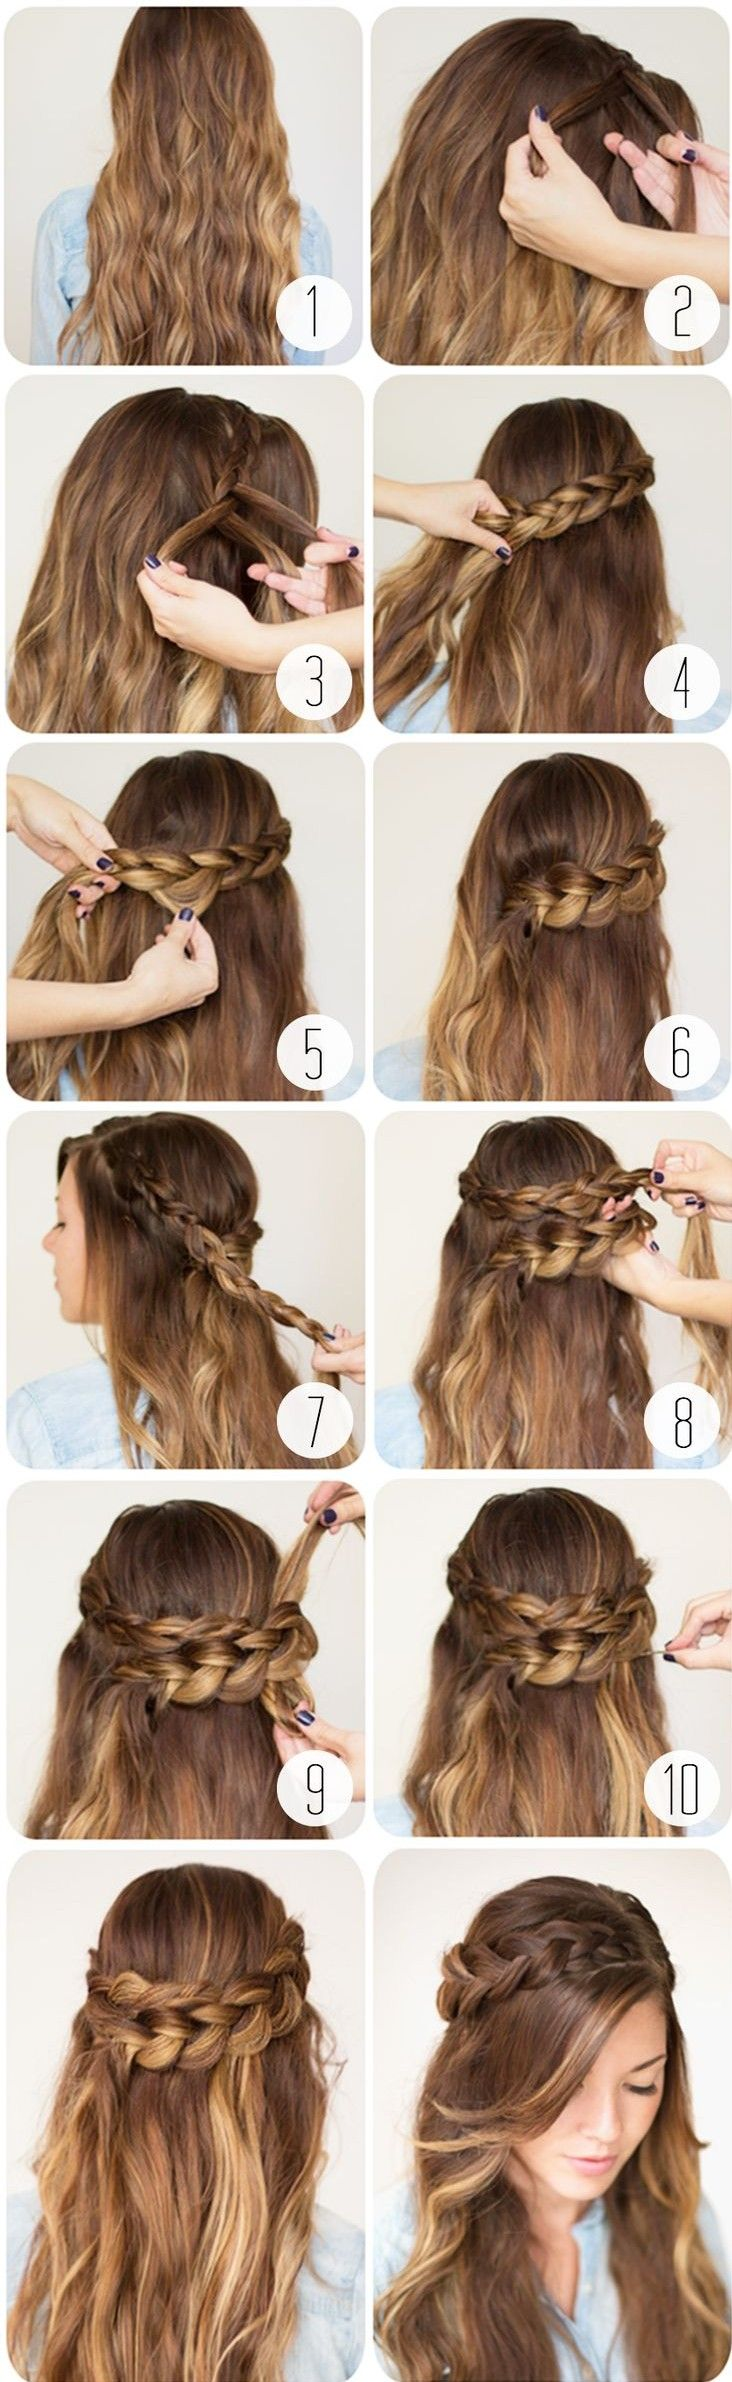 How To Wrap Around Braid #hairstyles #braids: